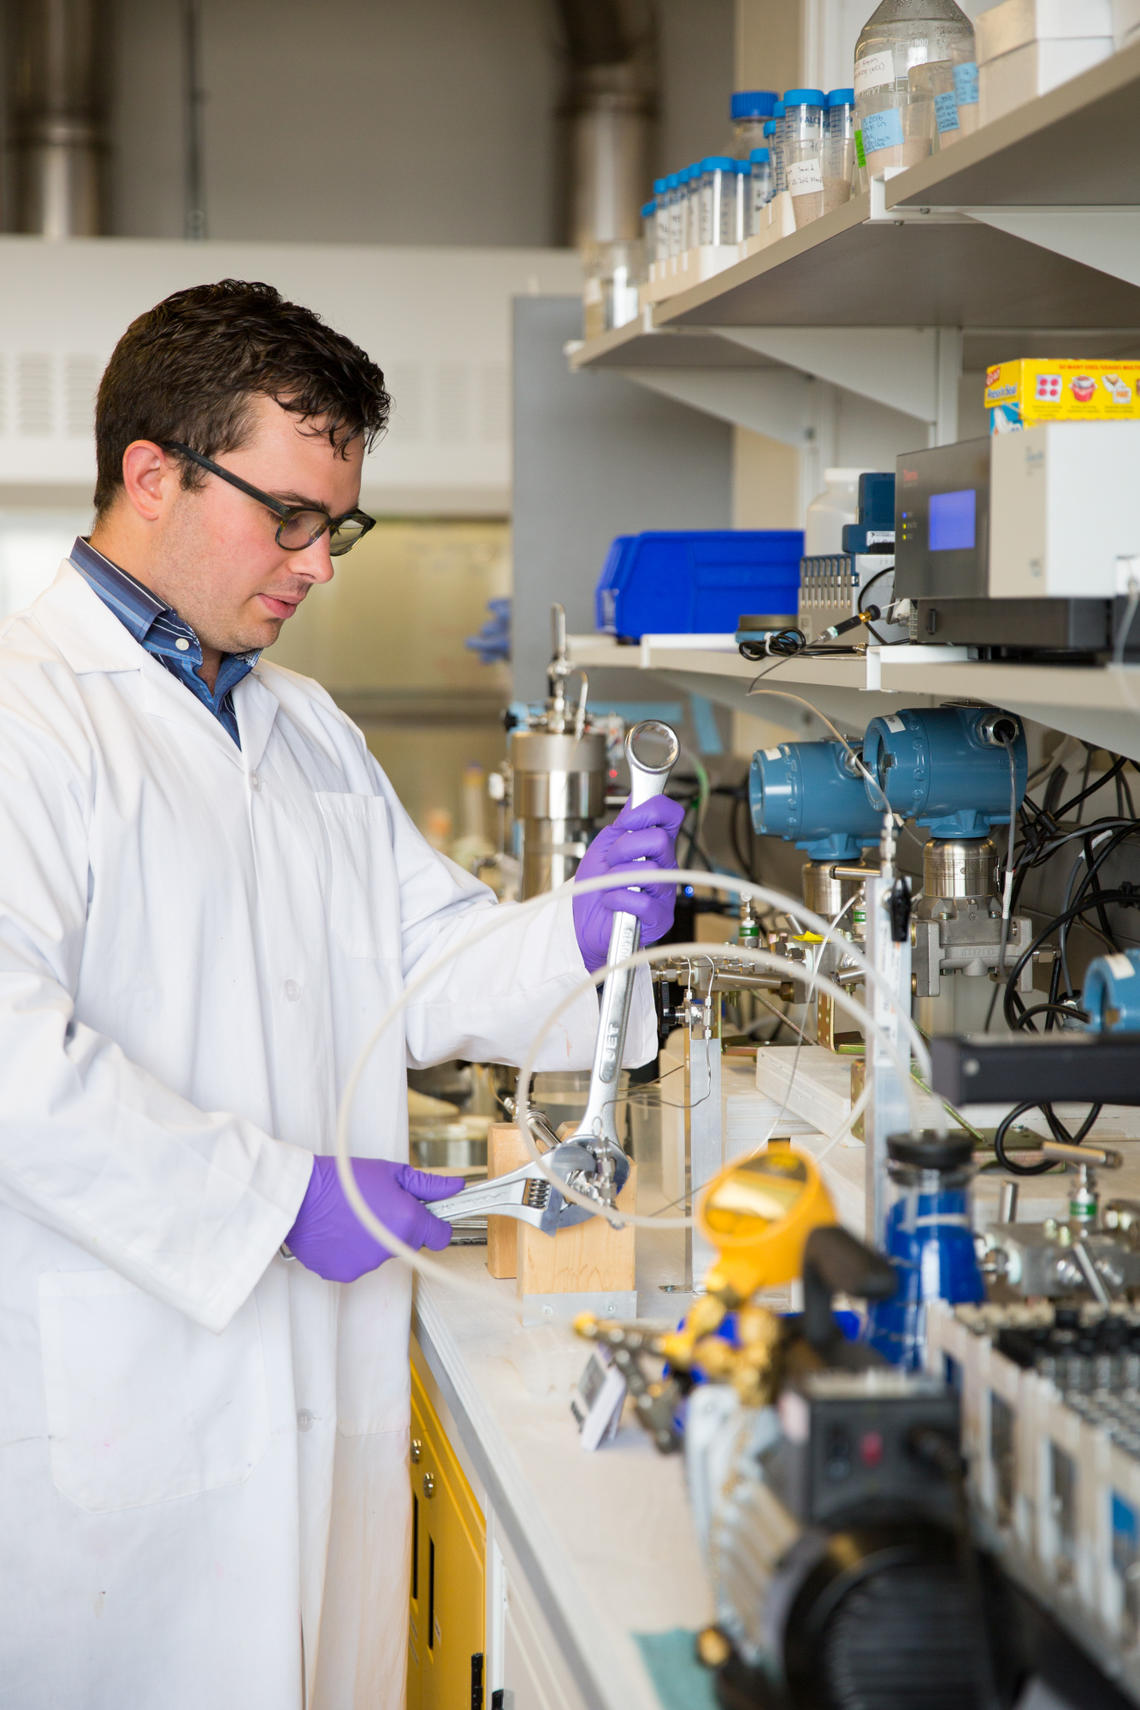 Graduate student Carter Dzuiba researched nanocellulose technology in Steven Bryant's lab to improve enhanced oil recovery and make it more environmentally friendly.